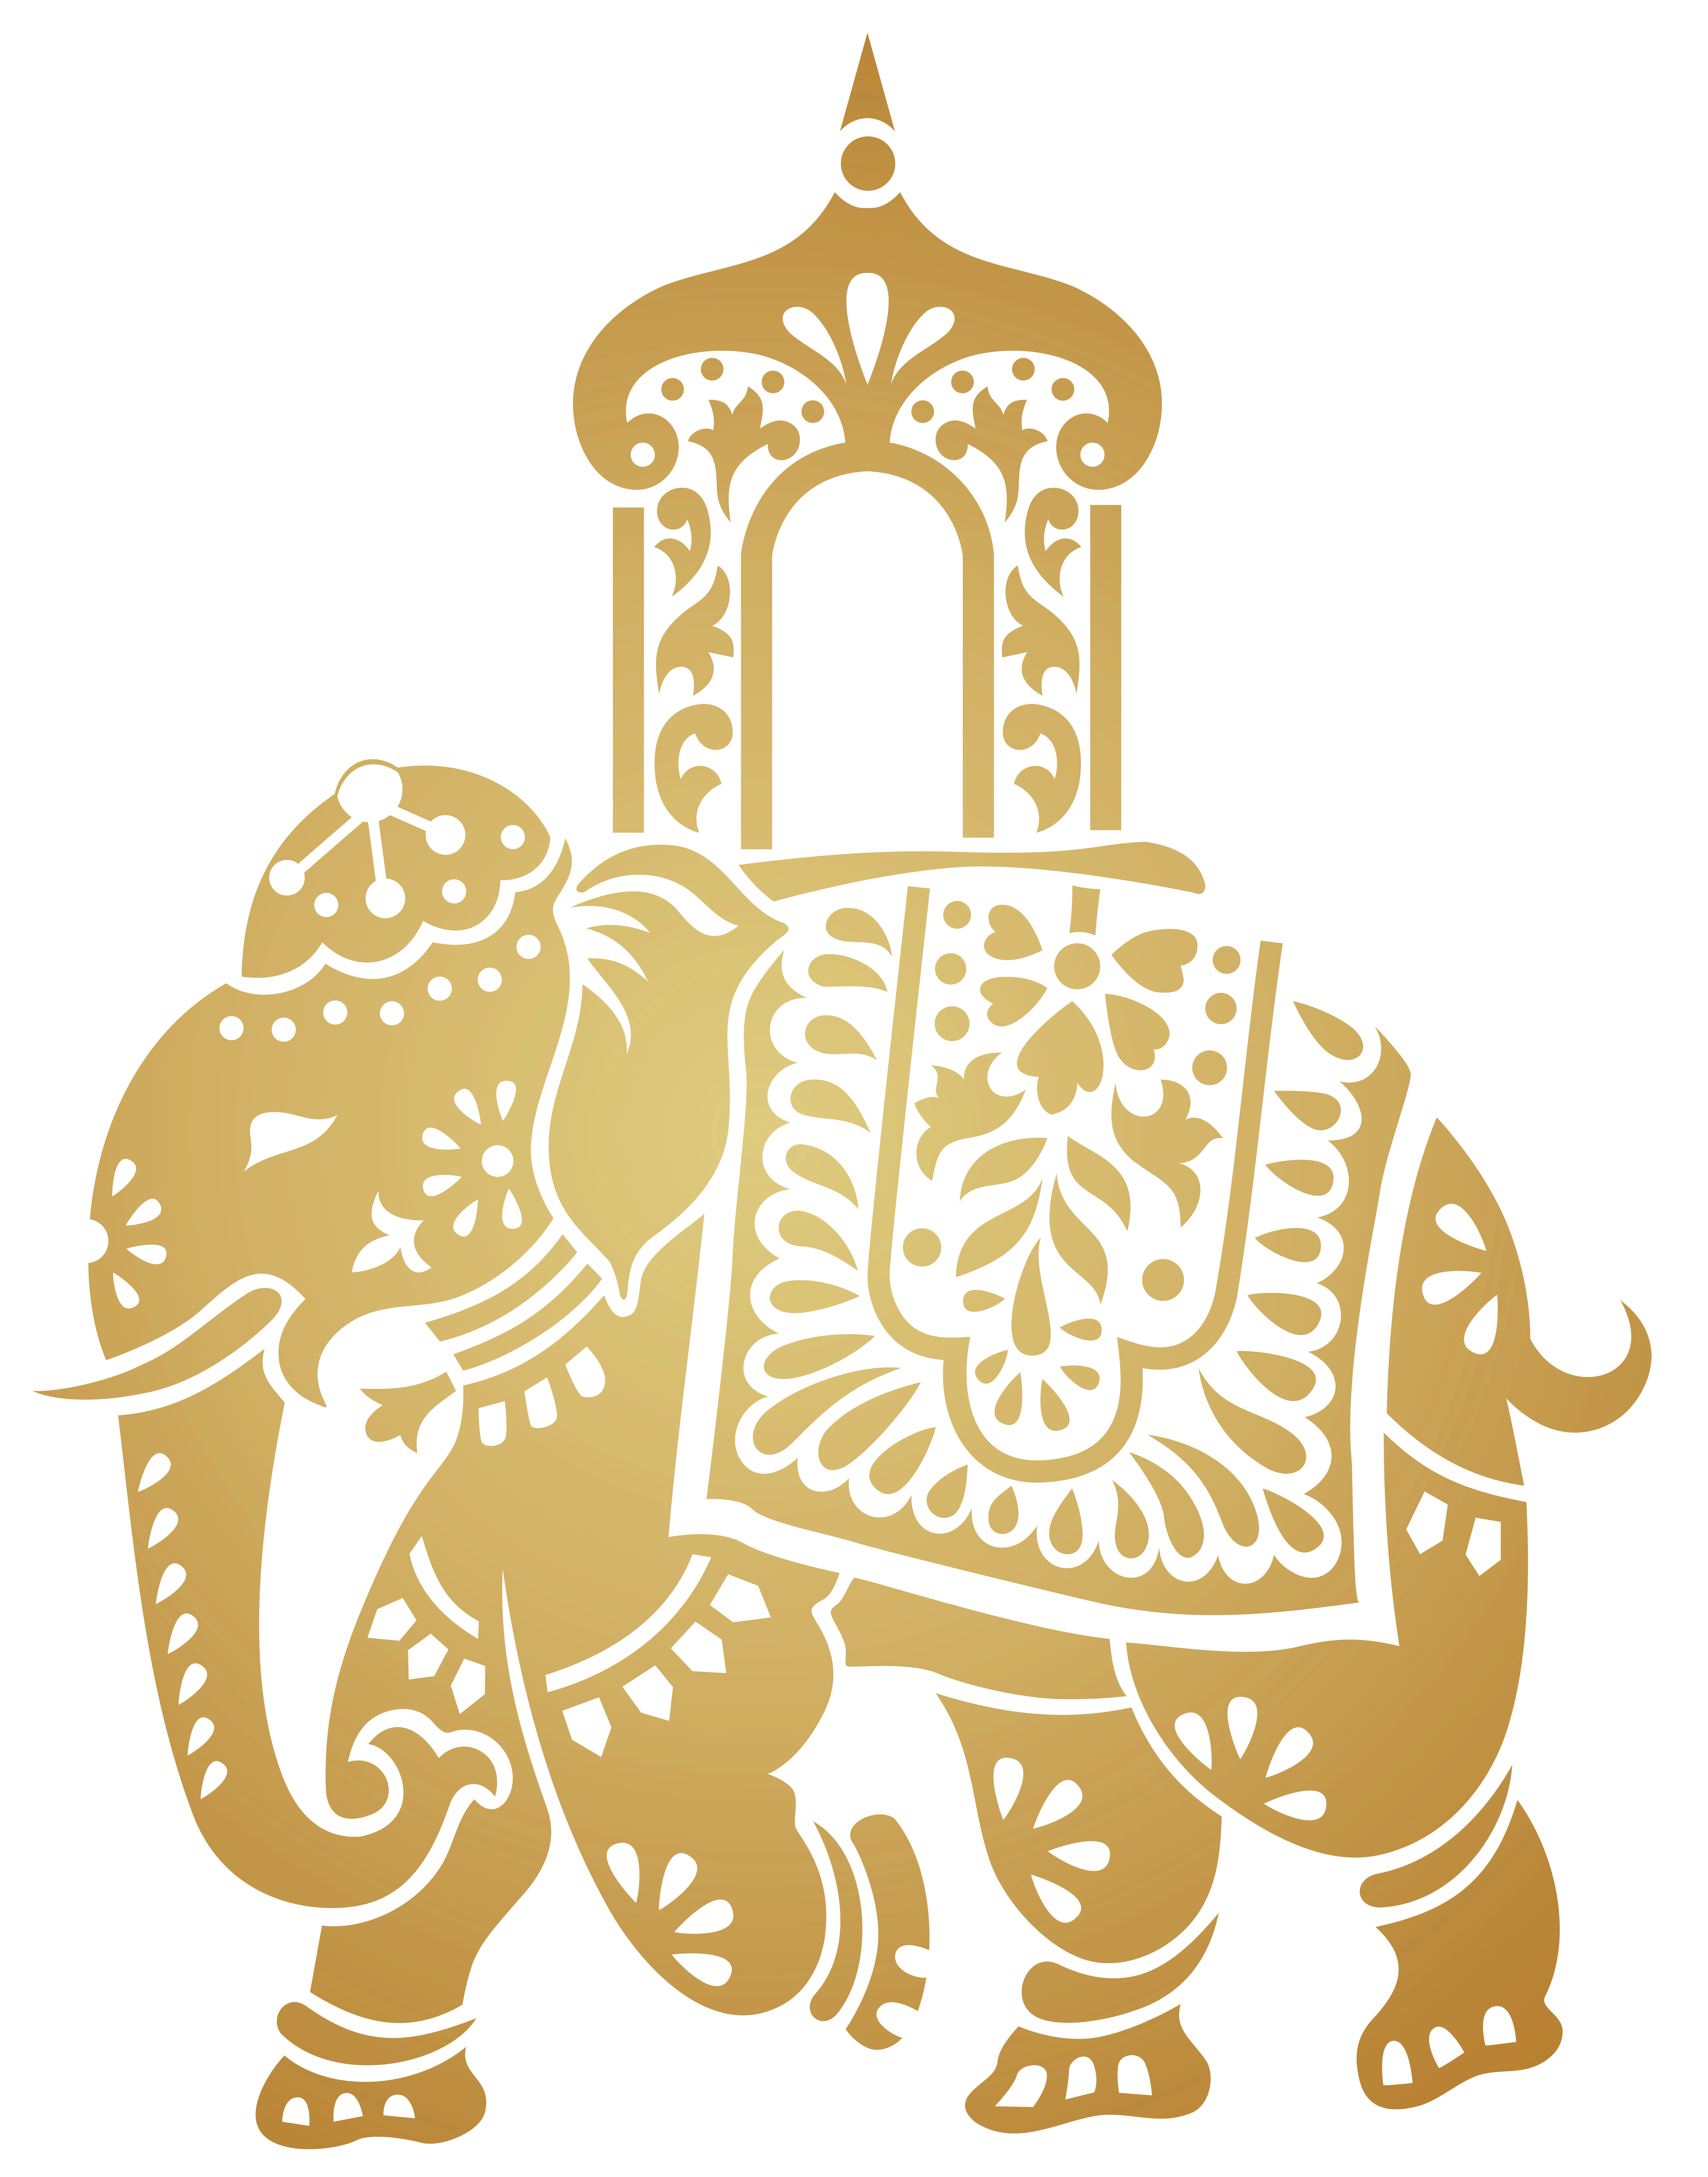 Indian Elephant Clip Art at Clker.com - vector clip art